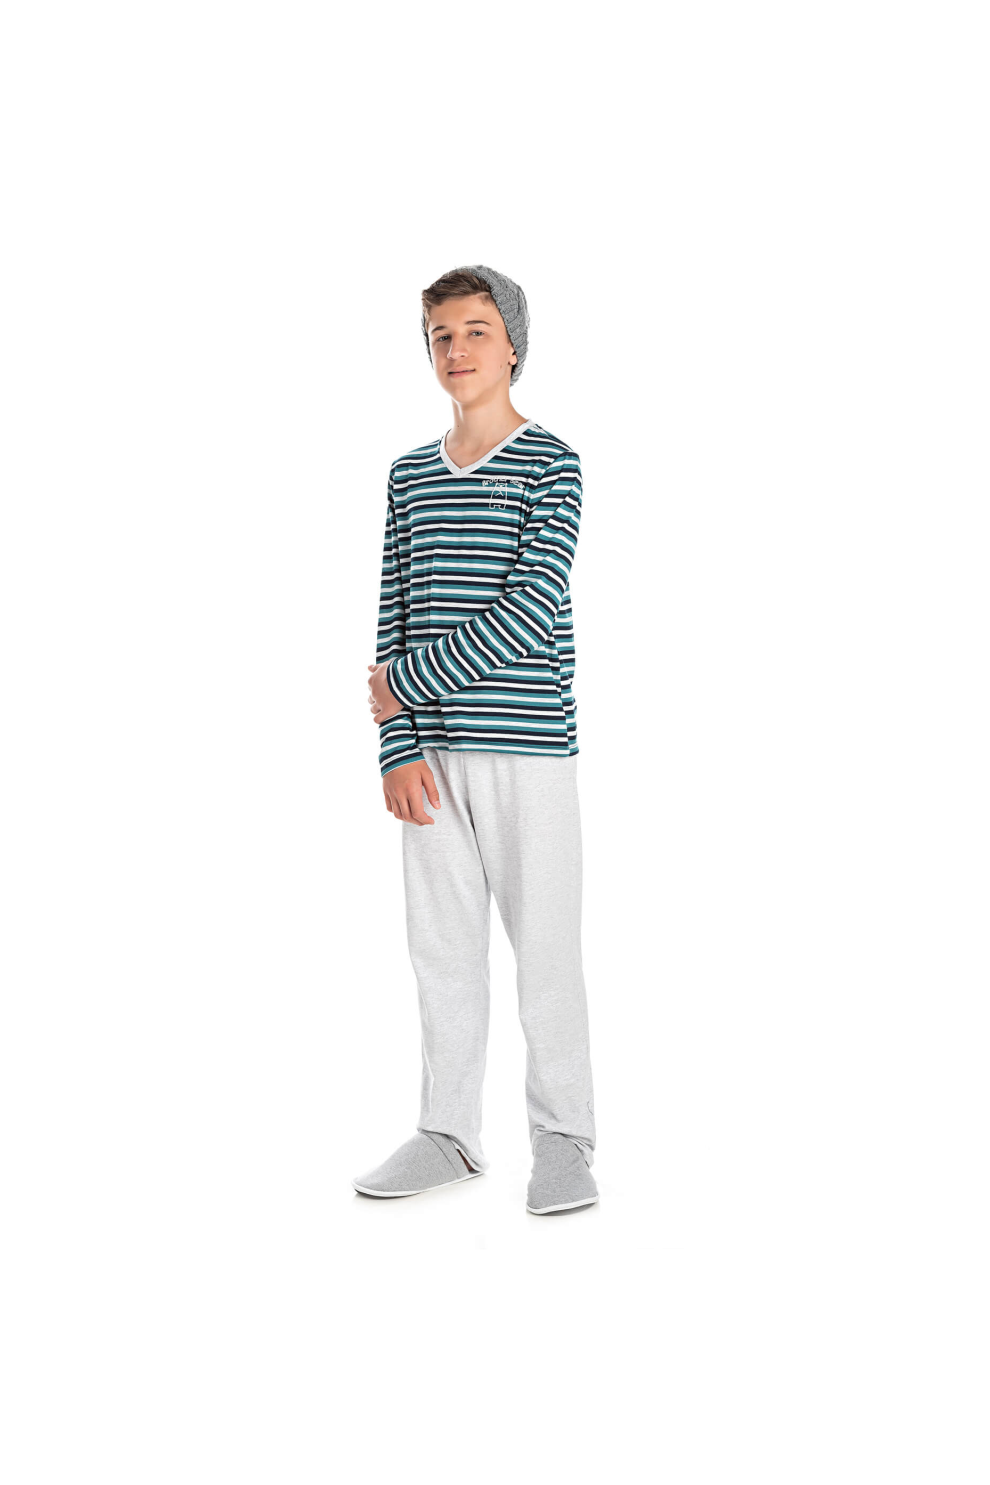 007/E - Pijama Juvenil Masculino Brother Bear